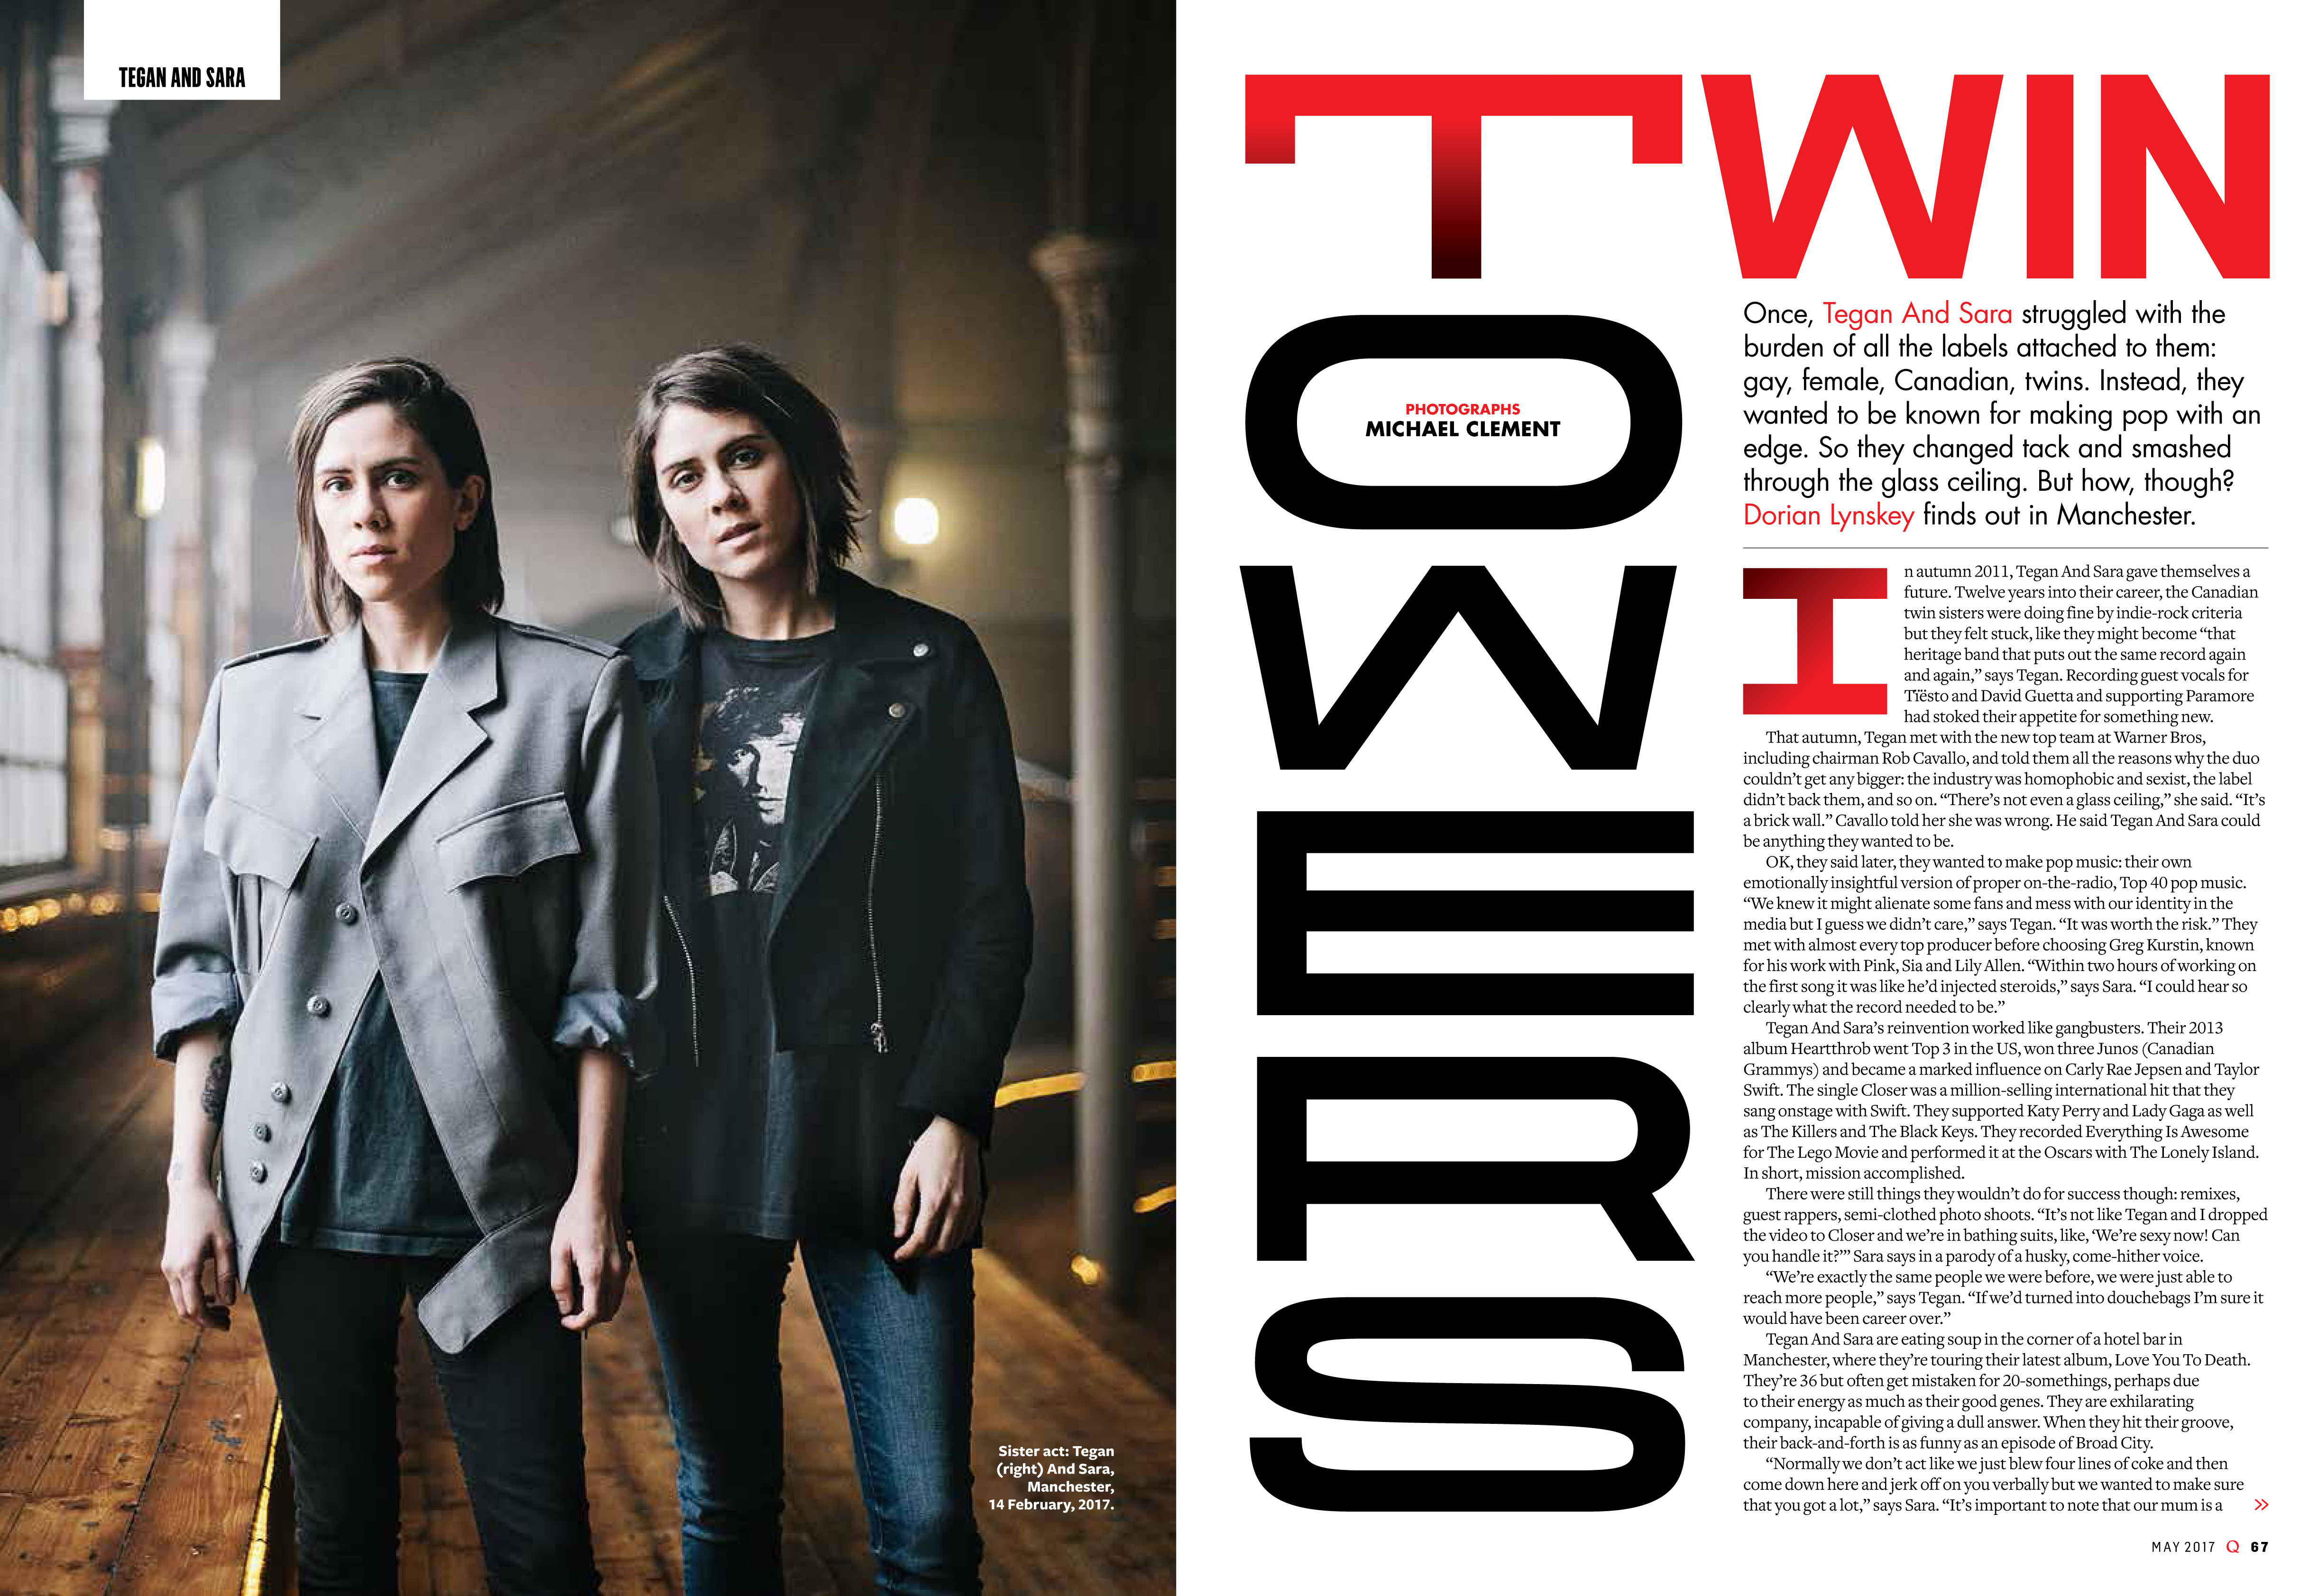 Tegan and Sara